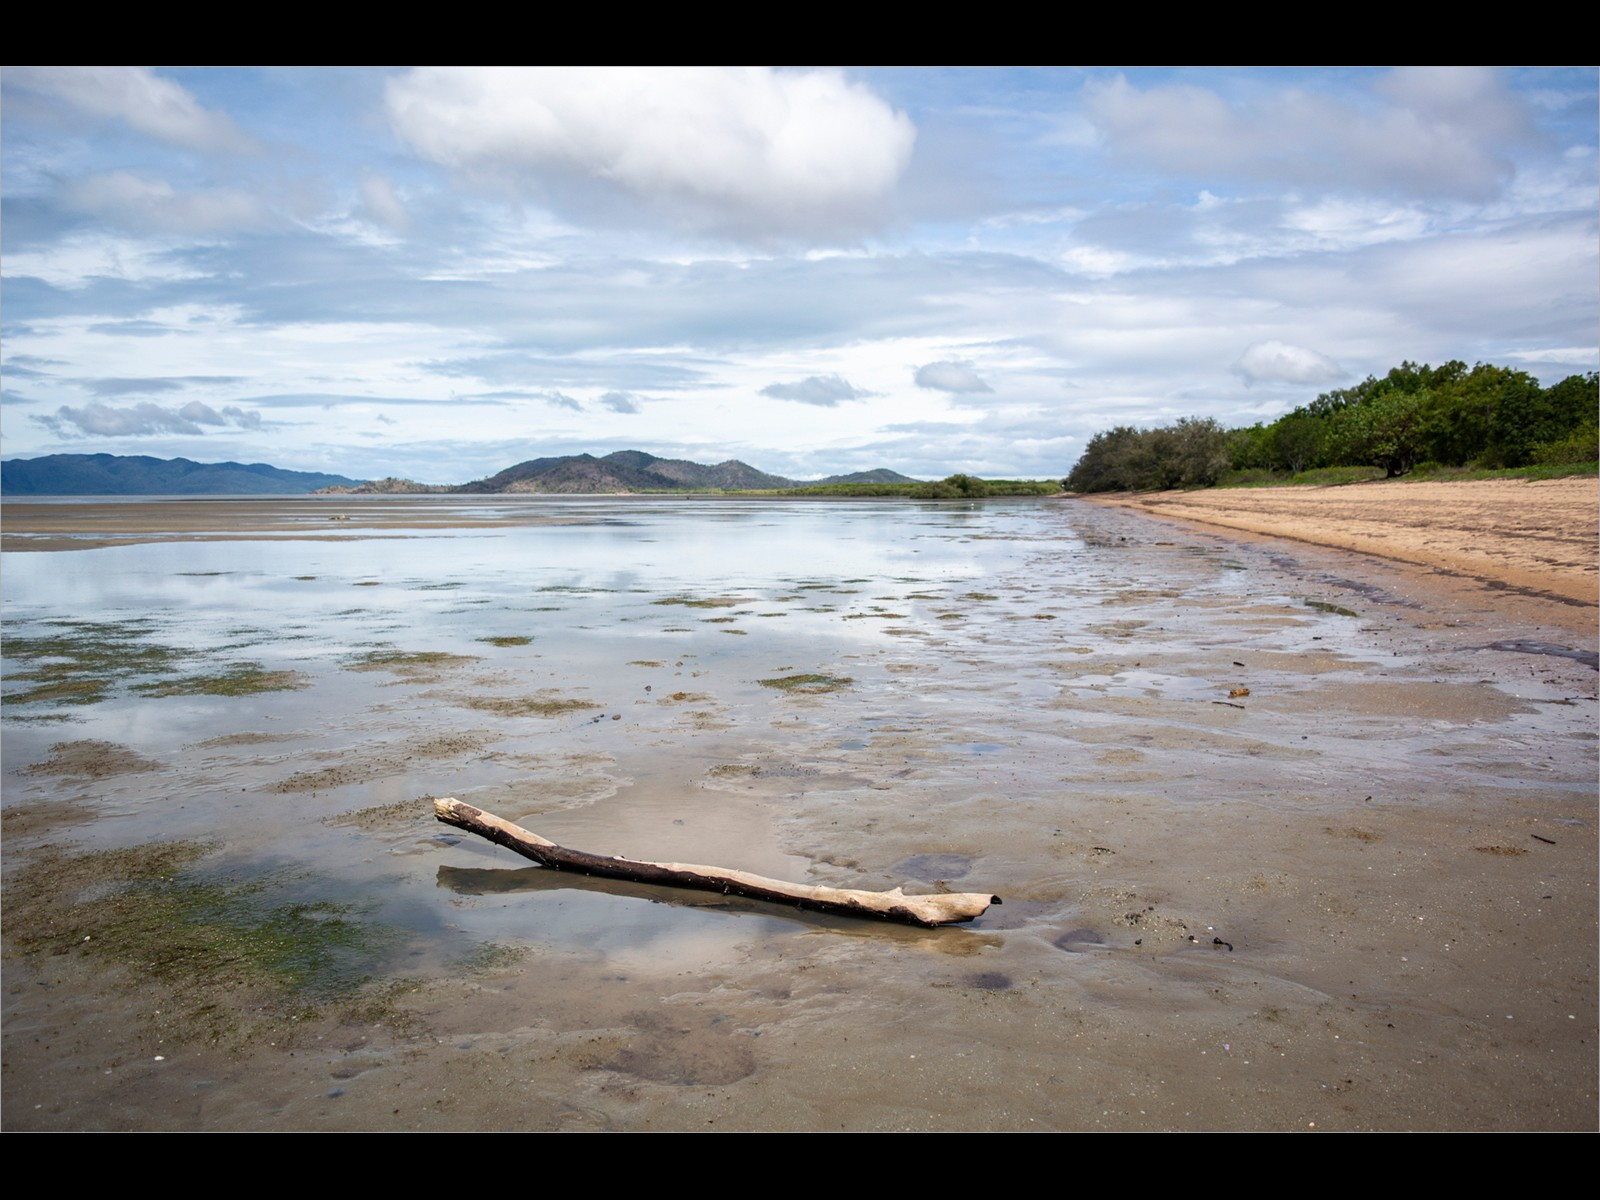 Driftwood on the beach in Townsville Queensland